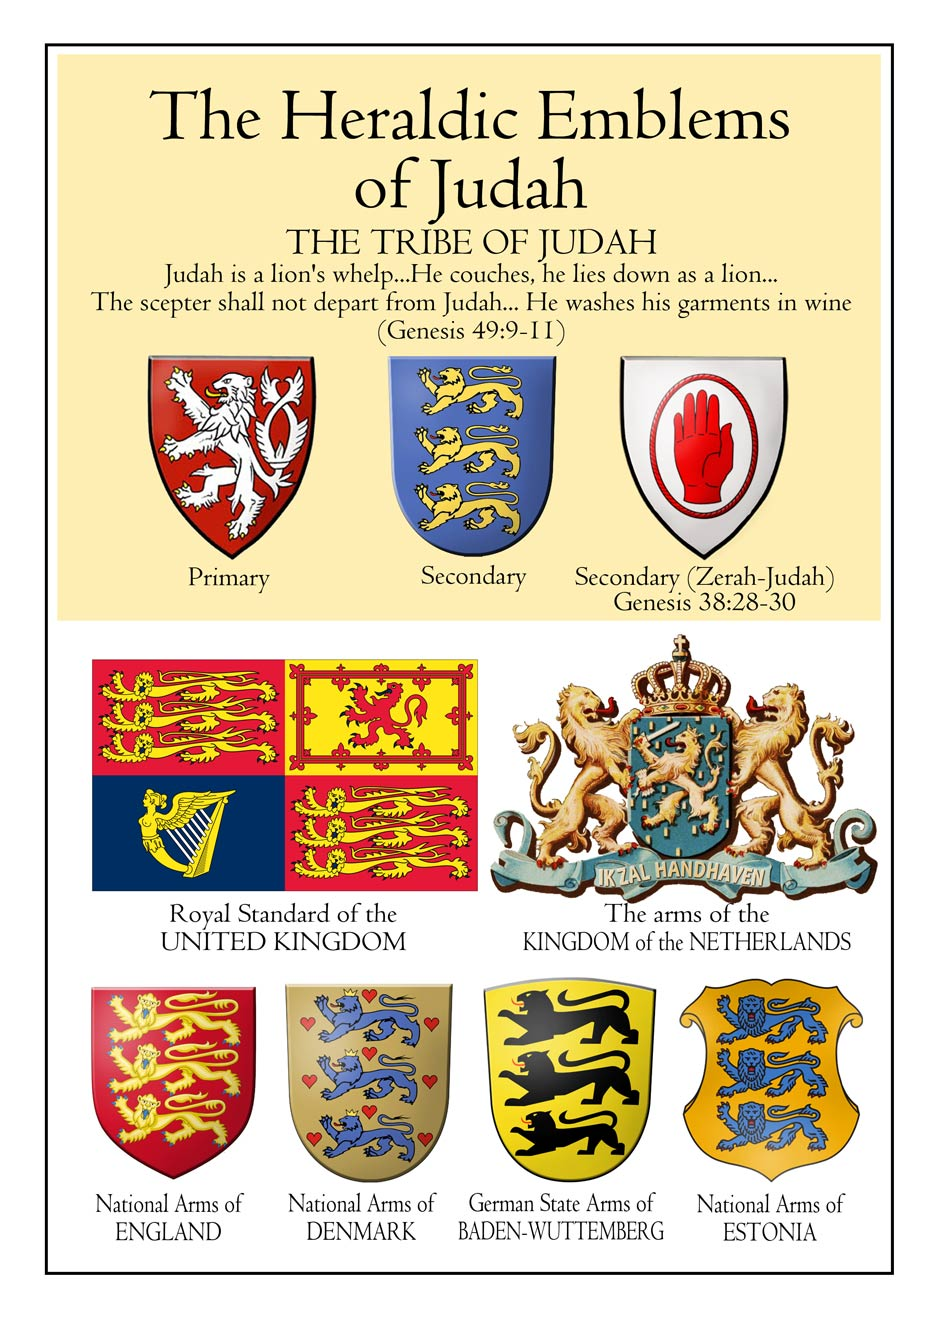 Emblems of the Tribe of Judah